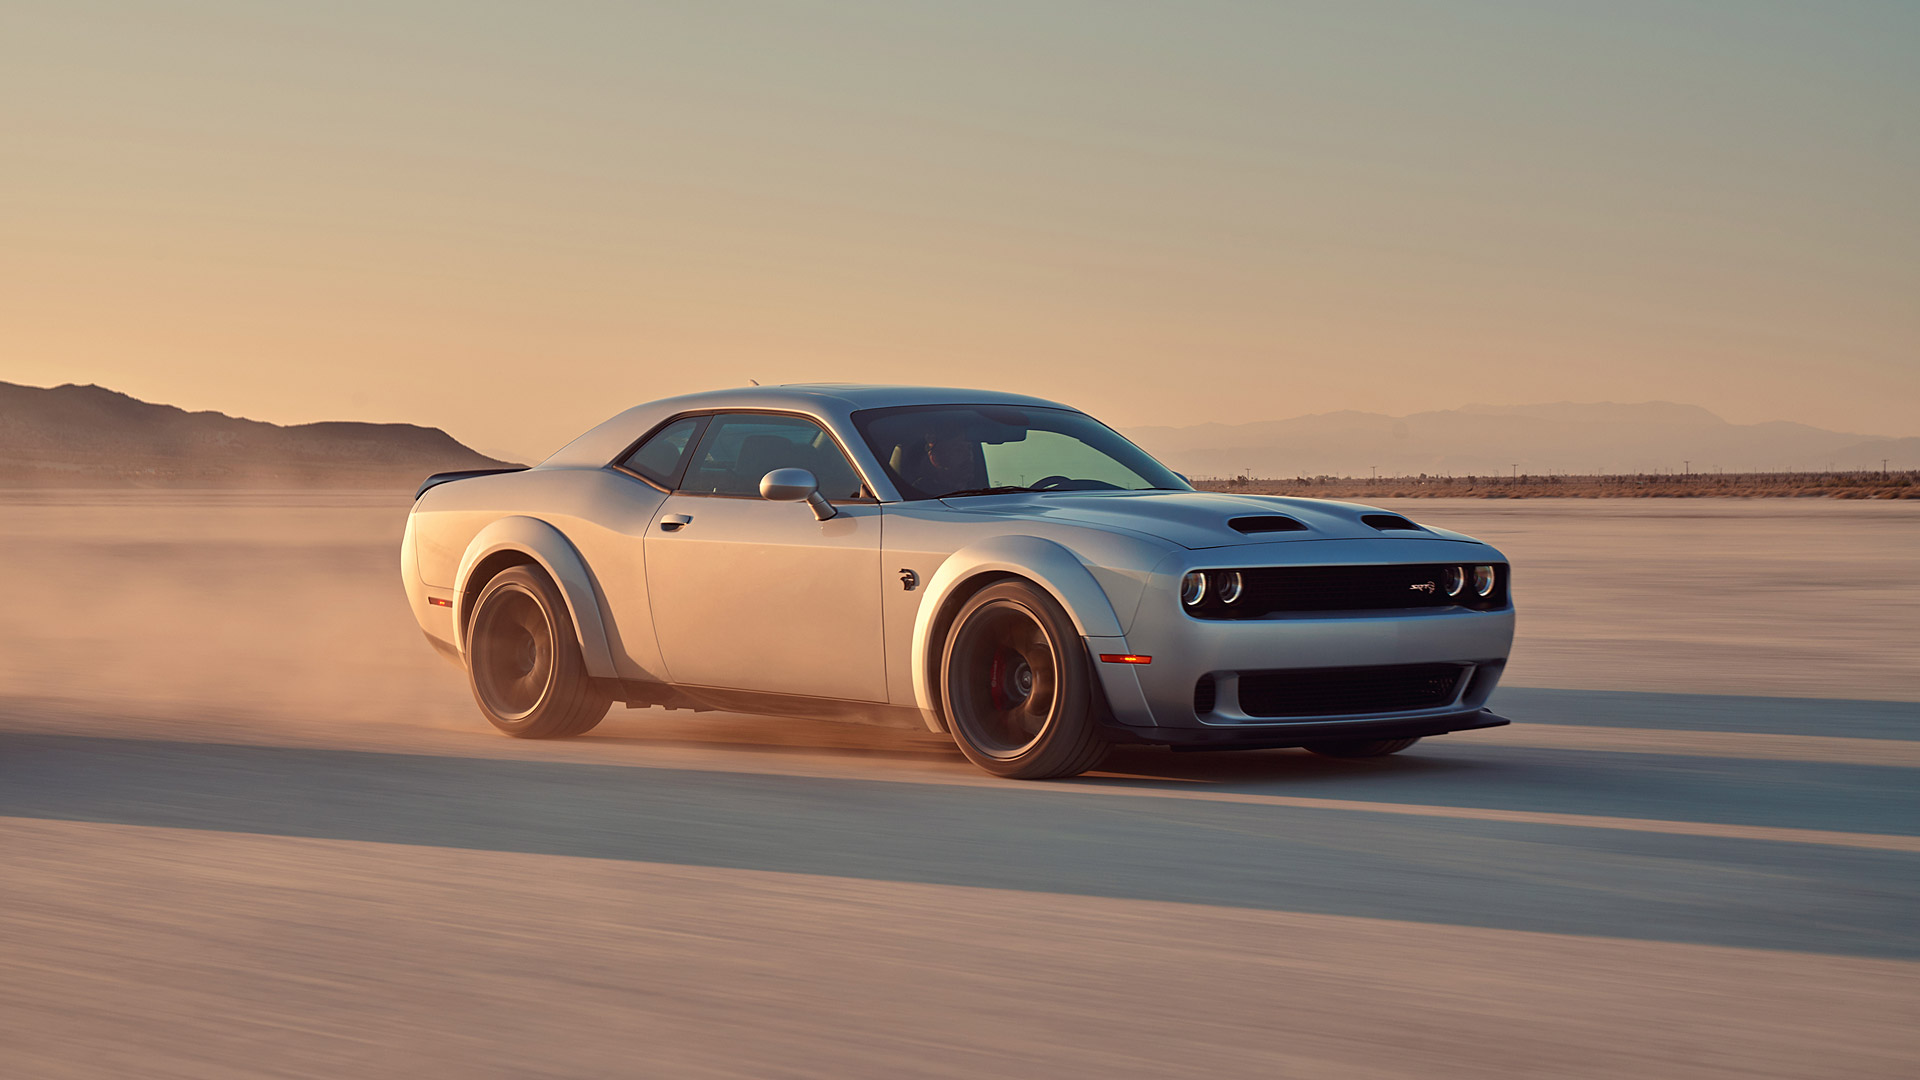 2019 Dodge Challenger SRT Hellcat Wallpapers HD Images   WSupercars 1920x1080